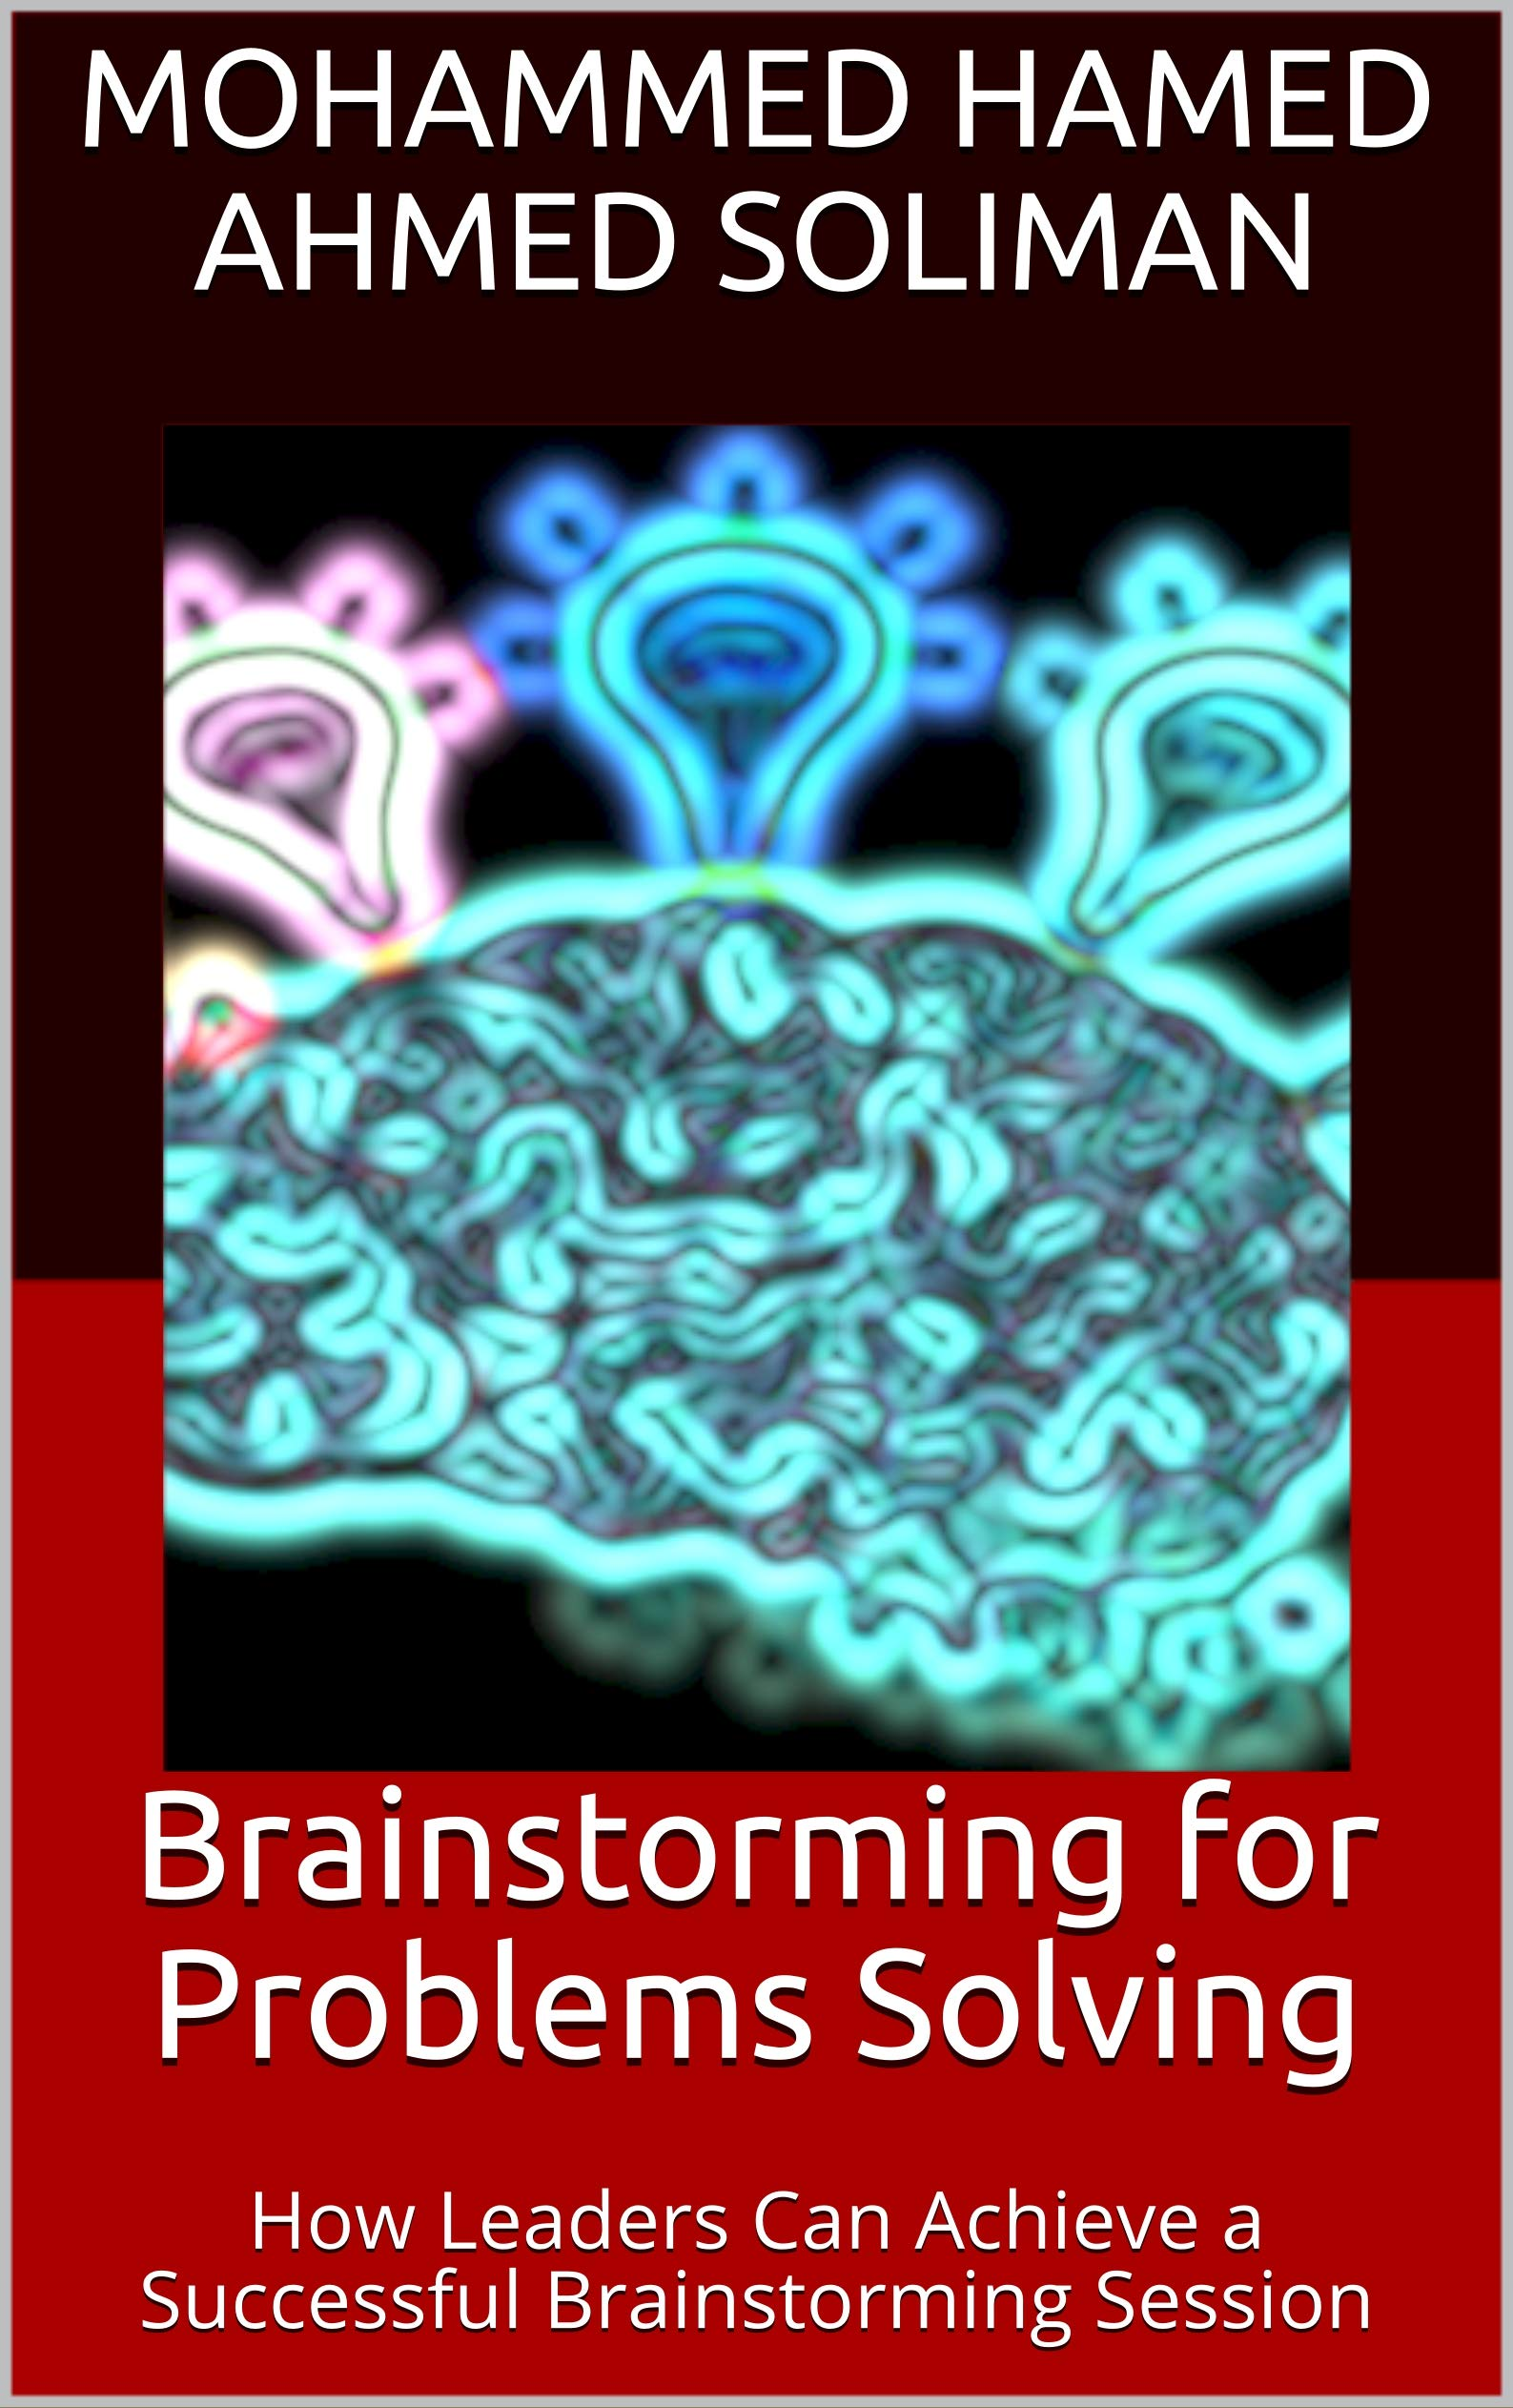 Brainstorming for Problems Solving: How Leaders Can Achieve a Successful Brainstorming Session